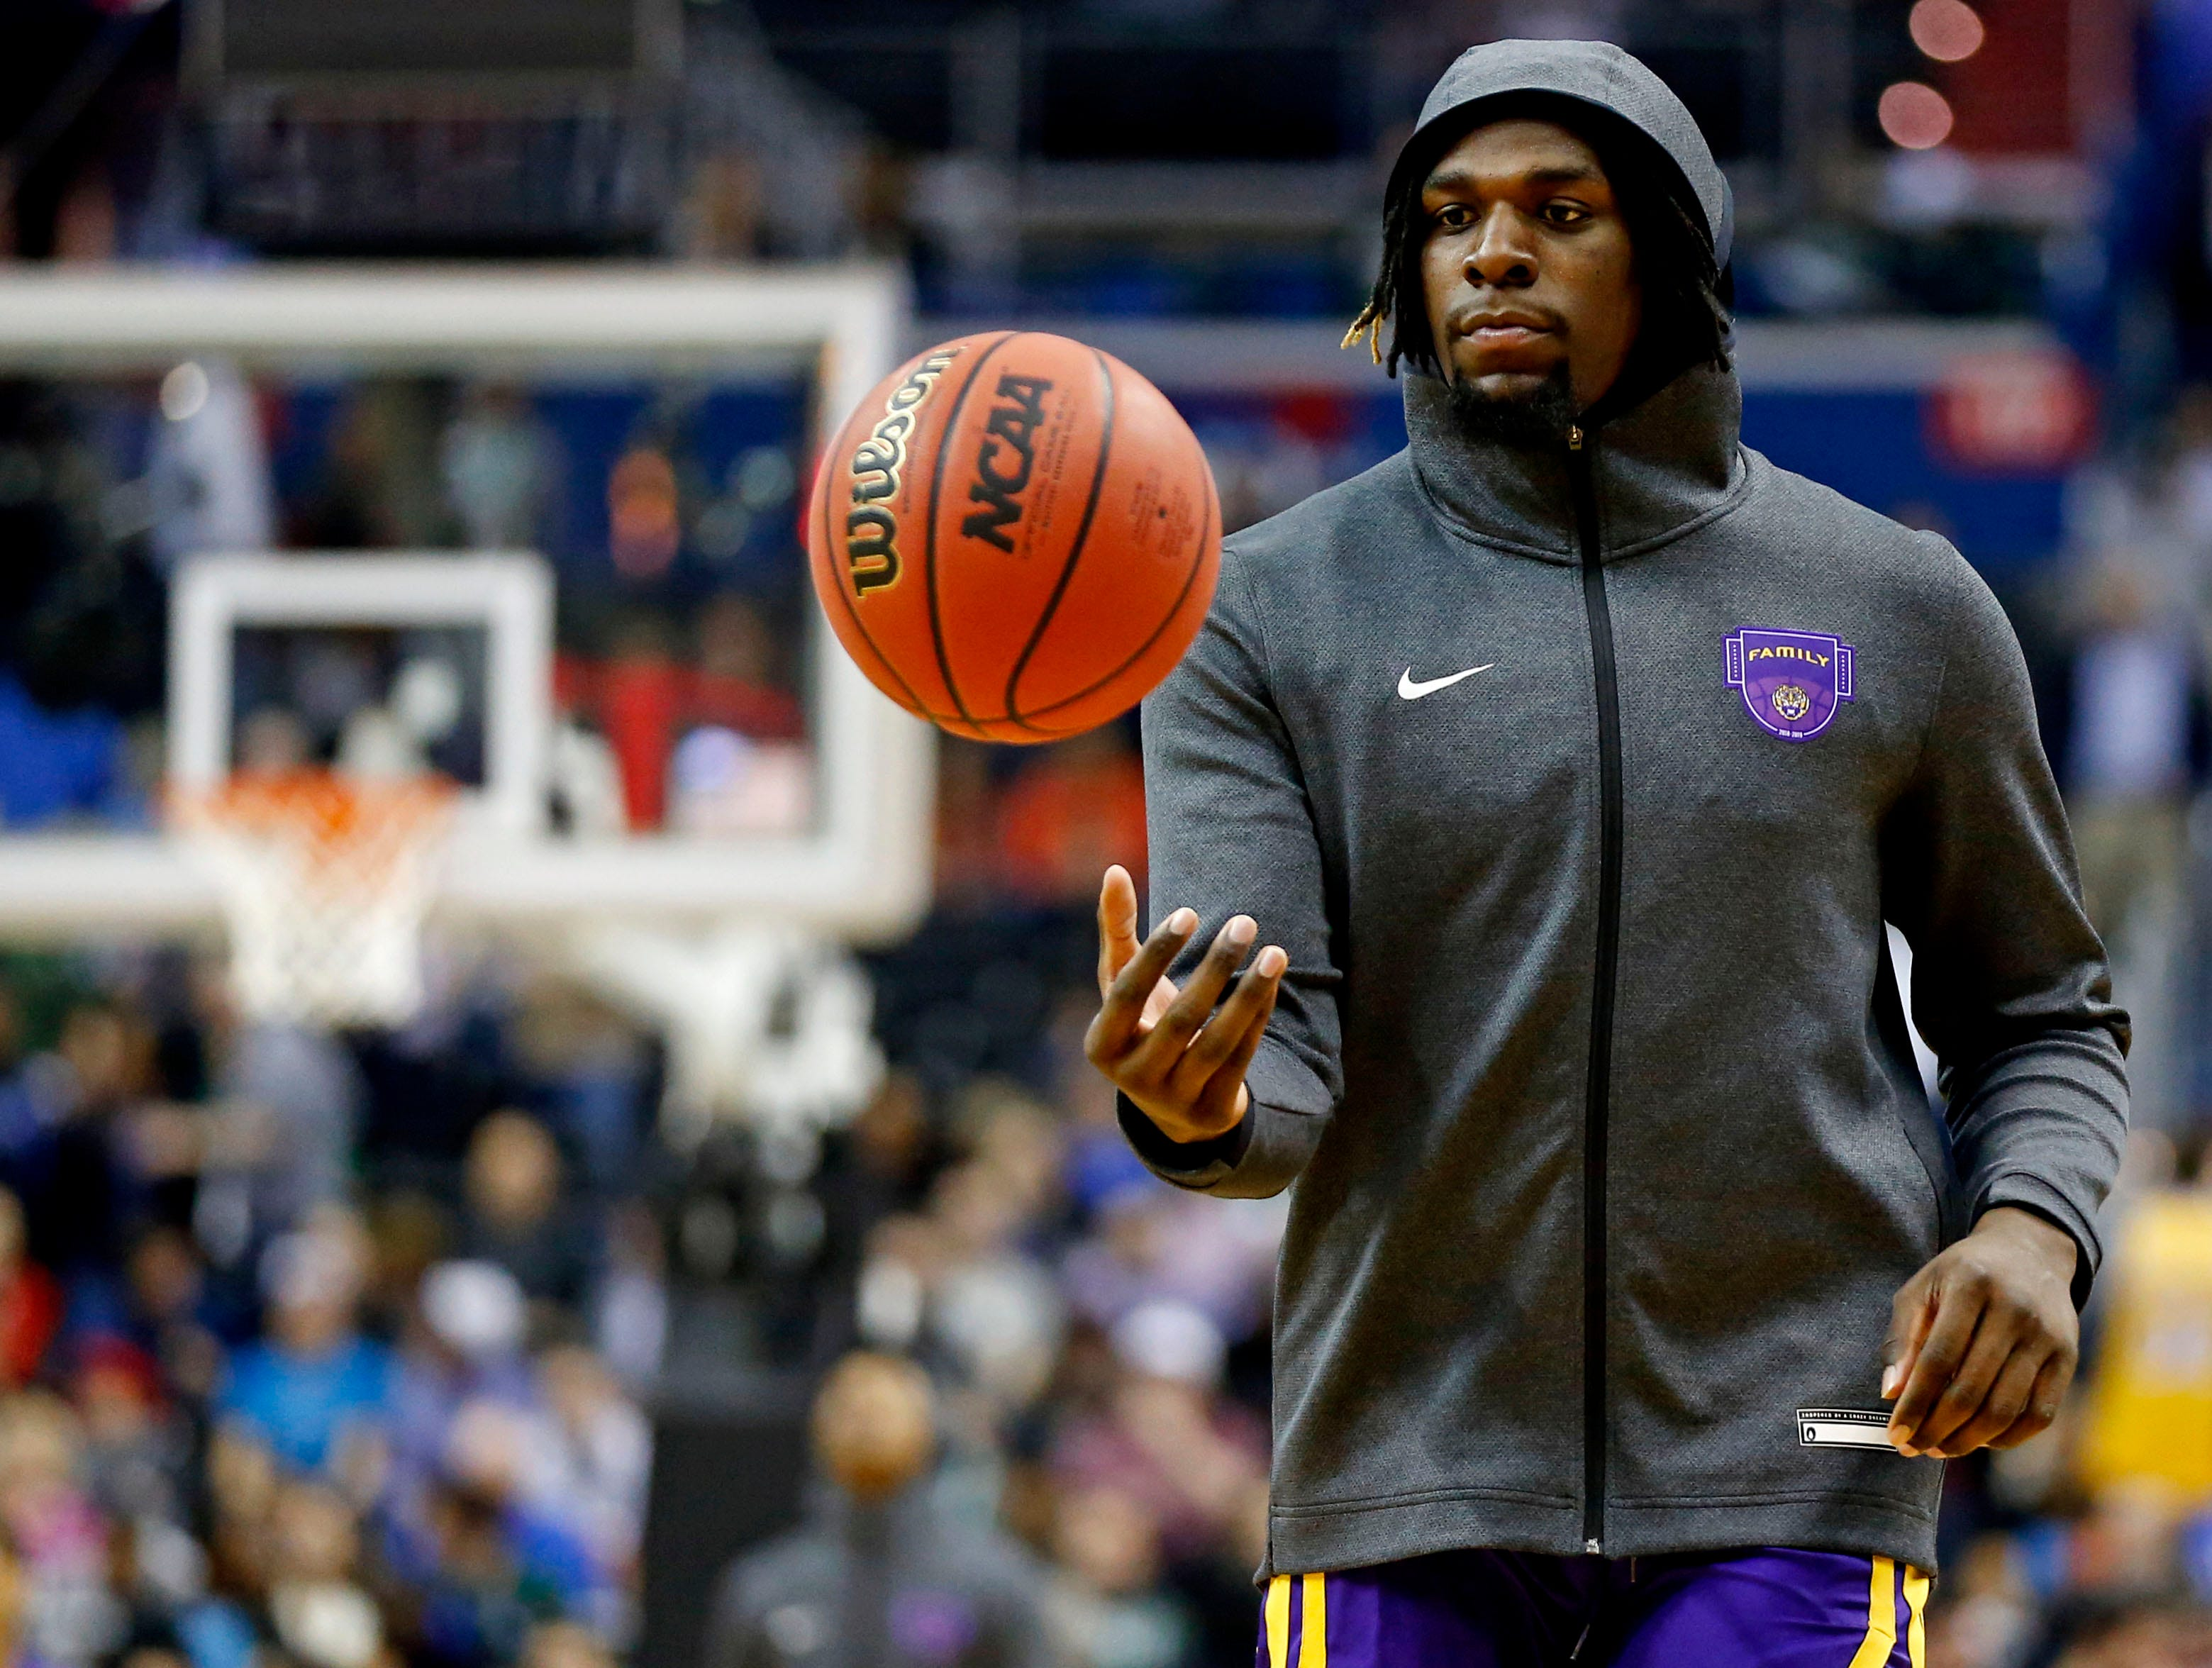 Mar 29, 2019; Washington, DC, USA; LSU Tigers forward Naz Reid (0) warms up before the game against the Michigan State Spartans in the semifinals of the east regional of the 2019 NCAA Tournament at Capital One Arena. Mandatory Credit: Amber Searls-USA TODAY Sports